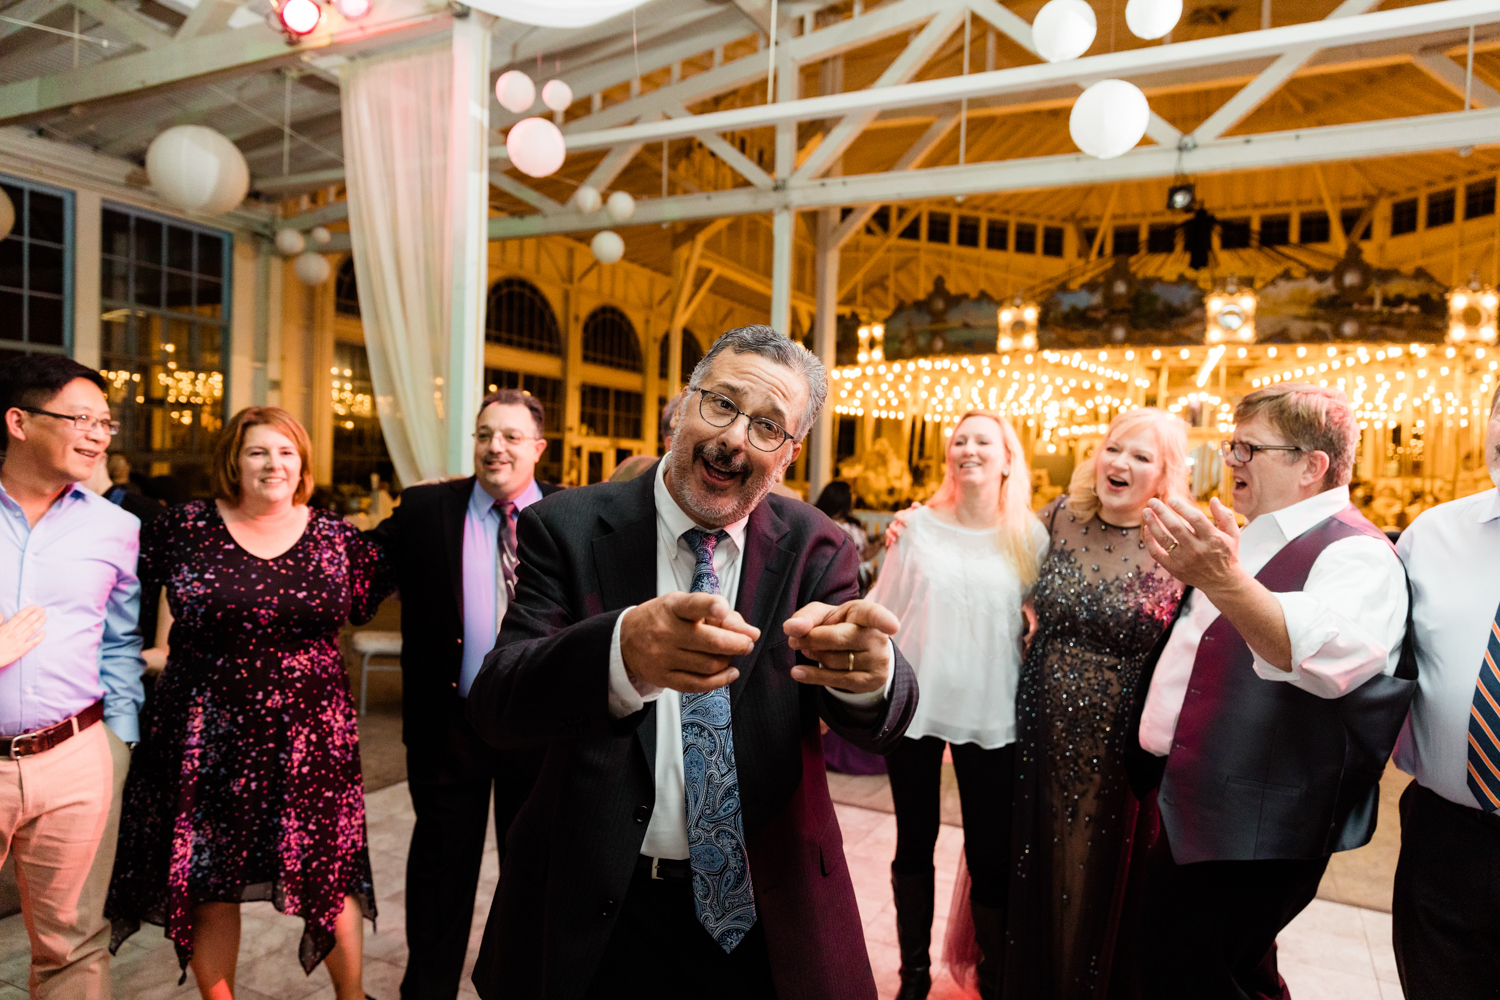 Guests dancing on wedding day with carousel